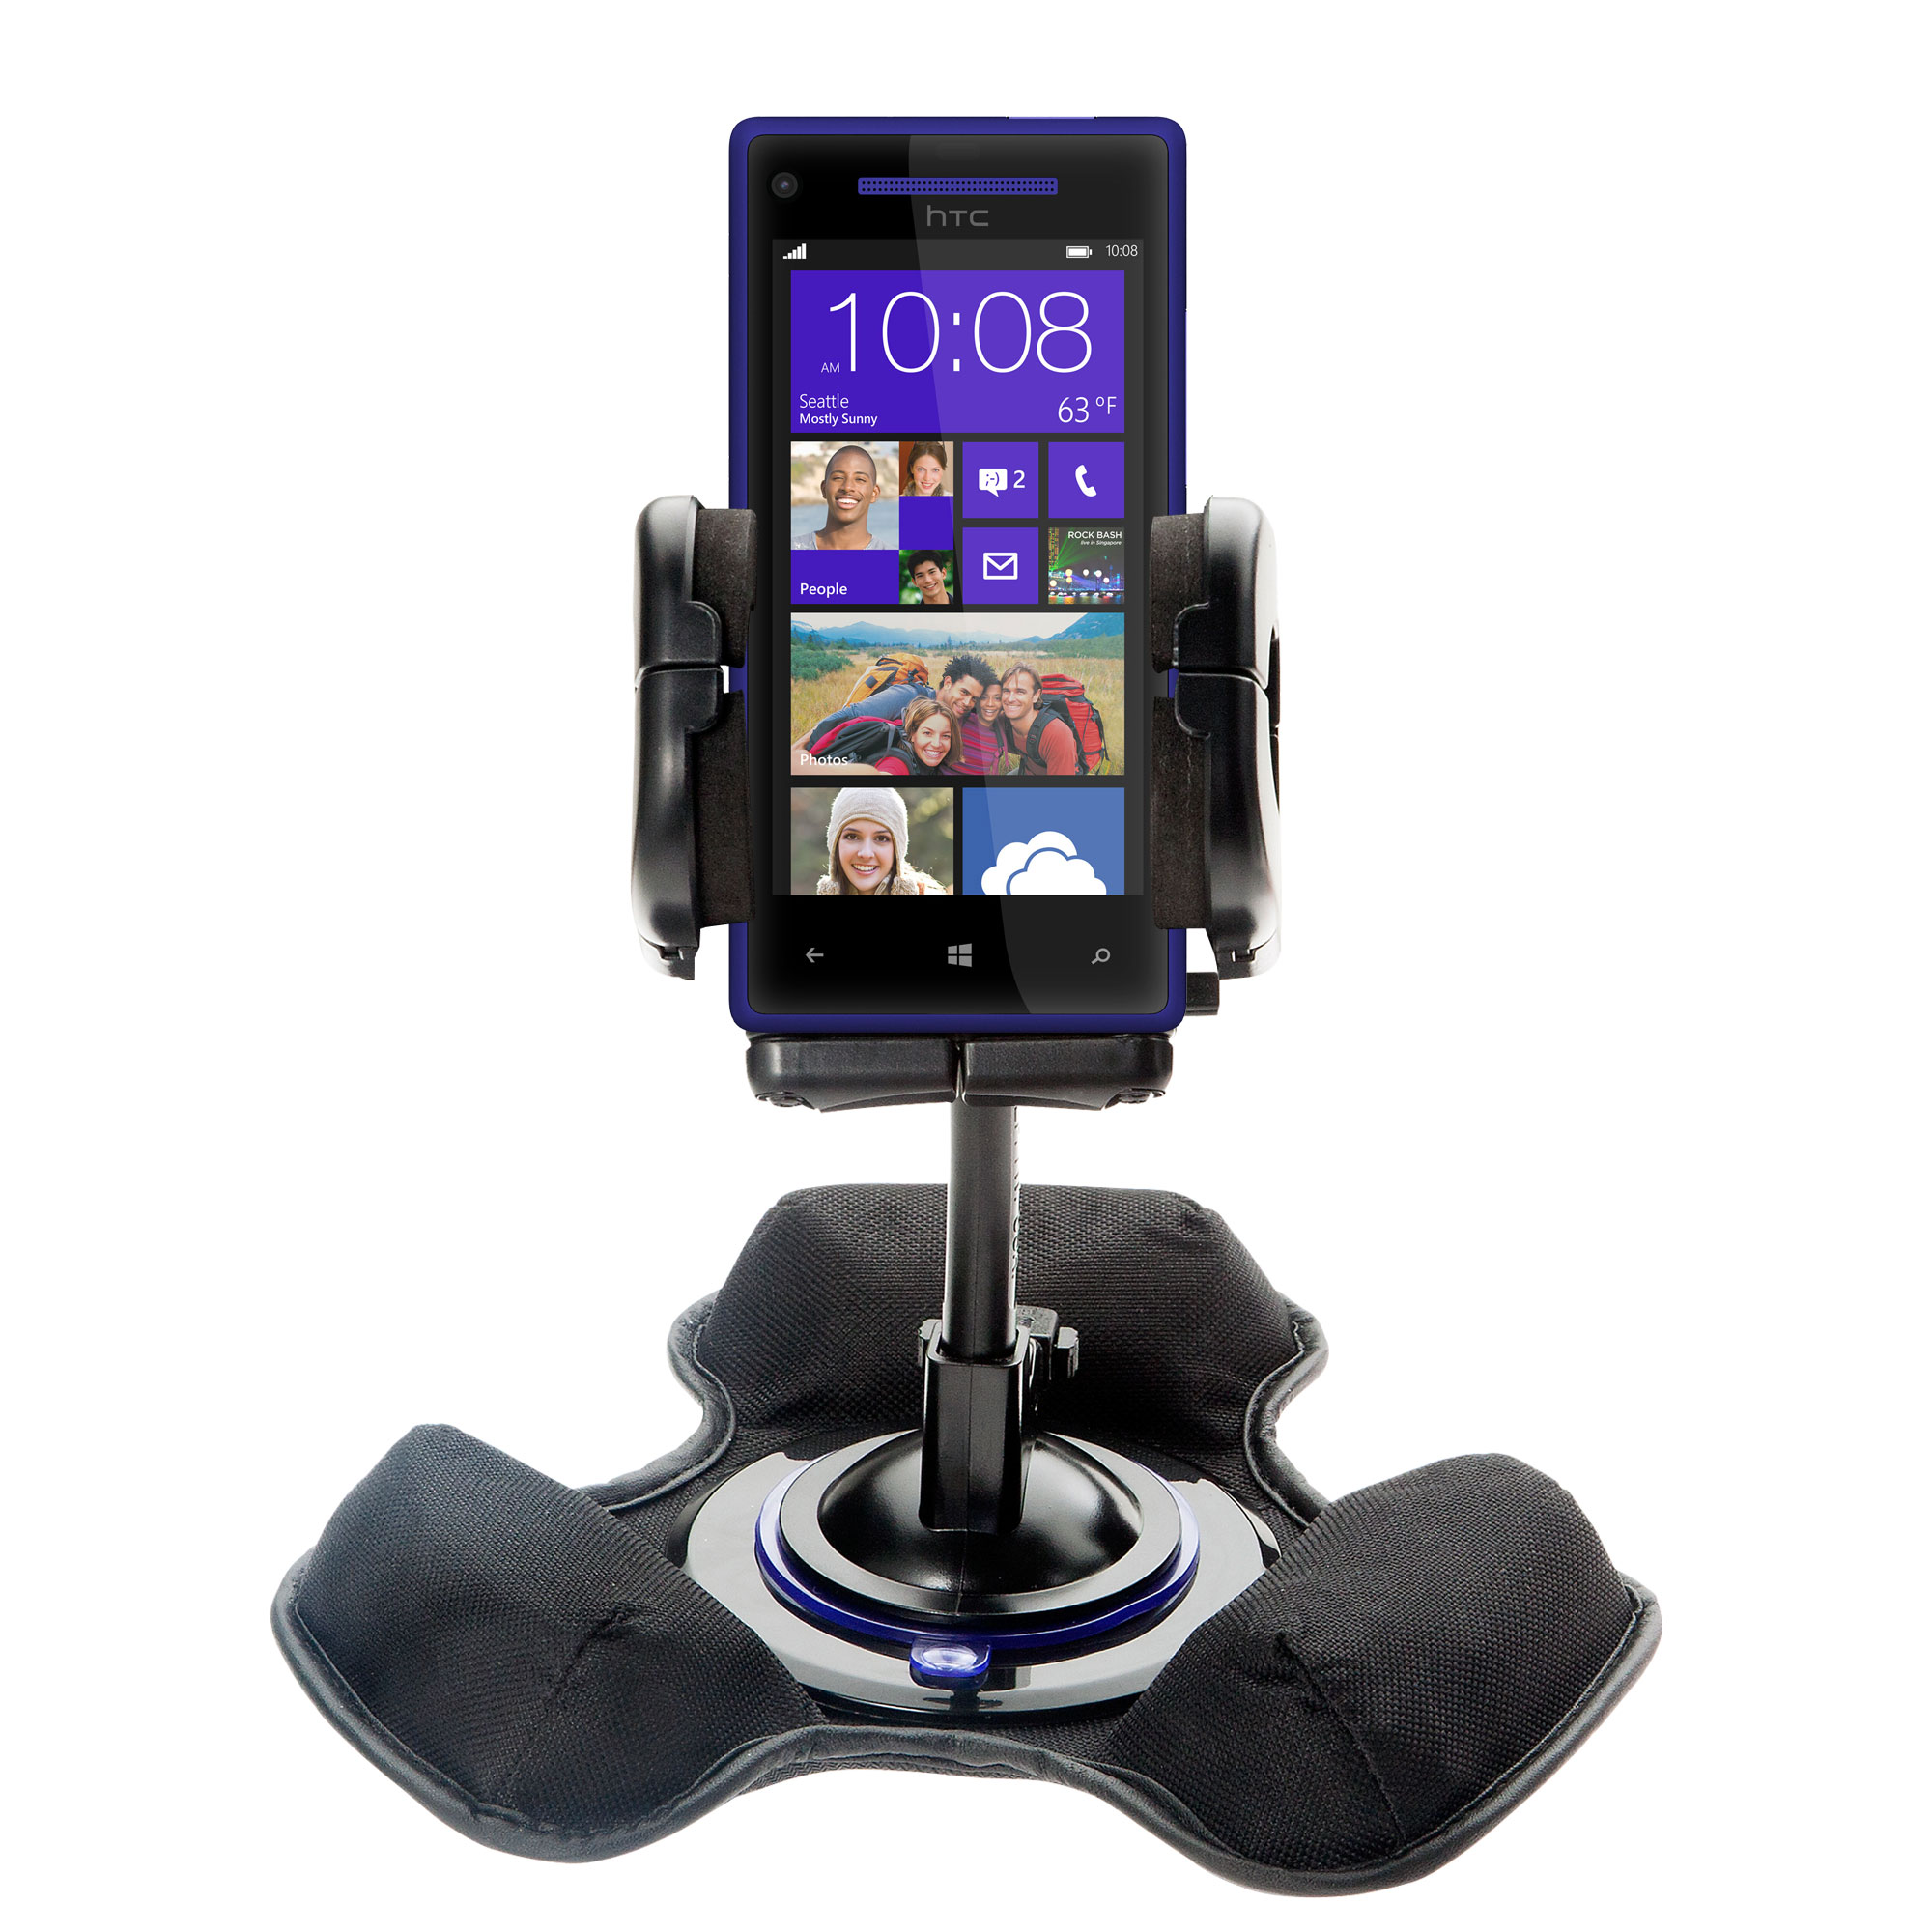 Dash and Windshield Holder compatible with the HTC Windows Phone 8x